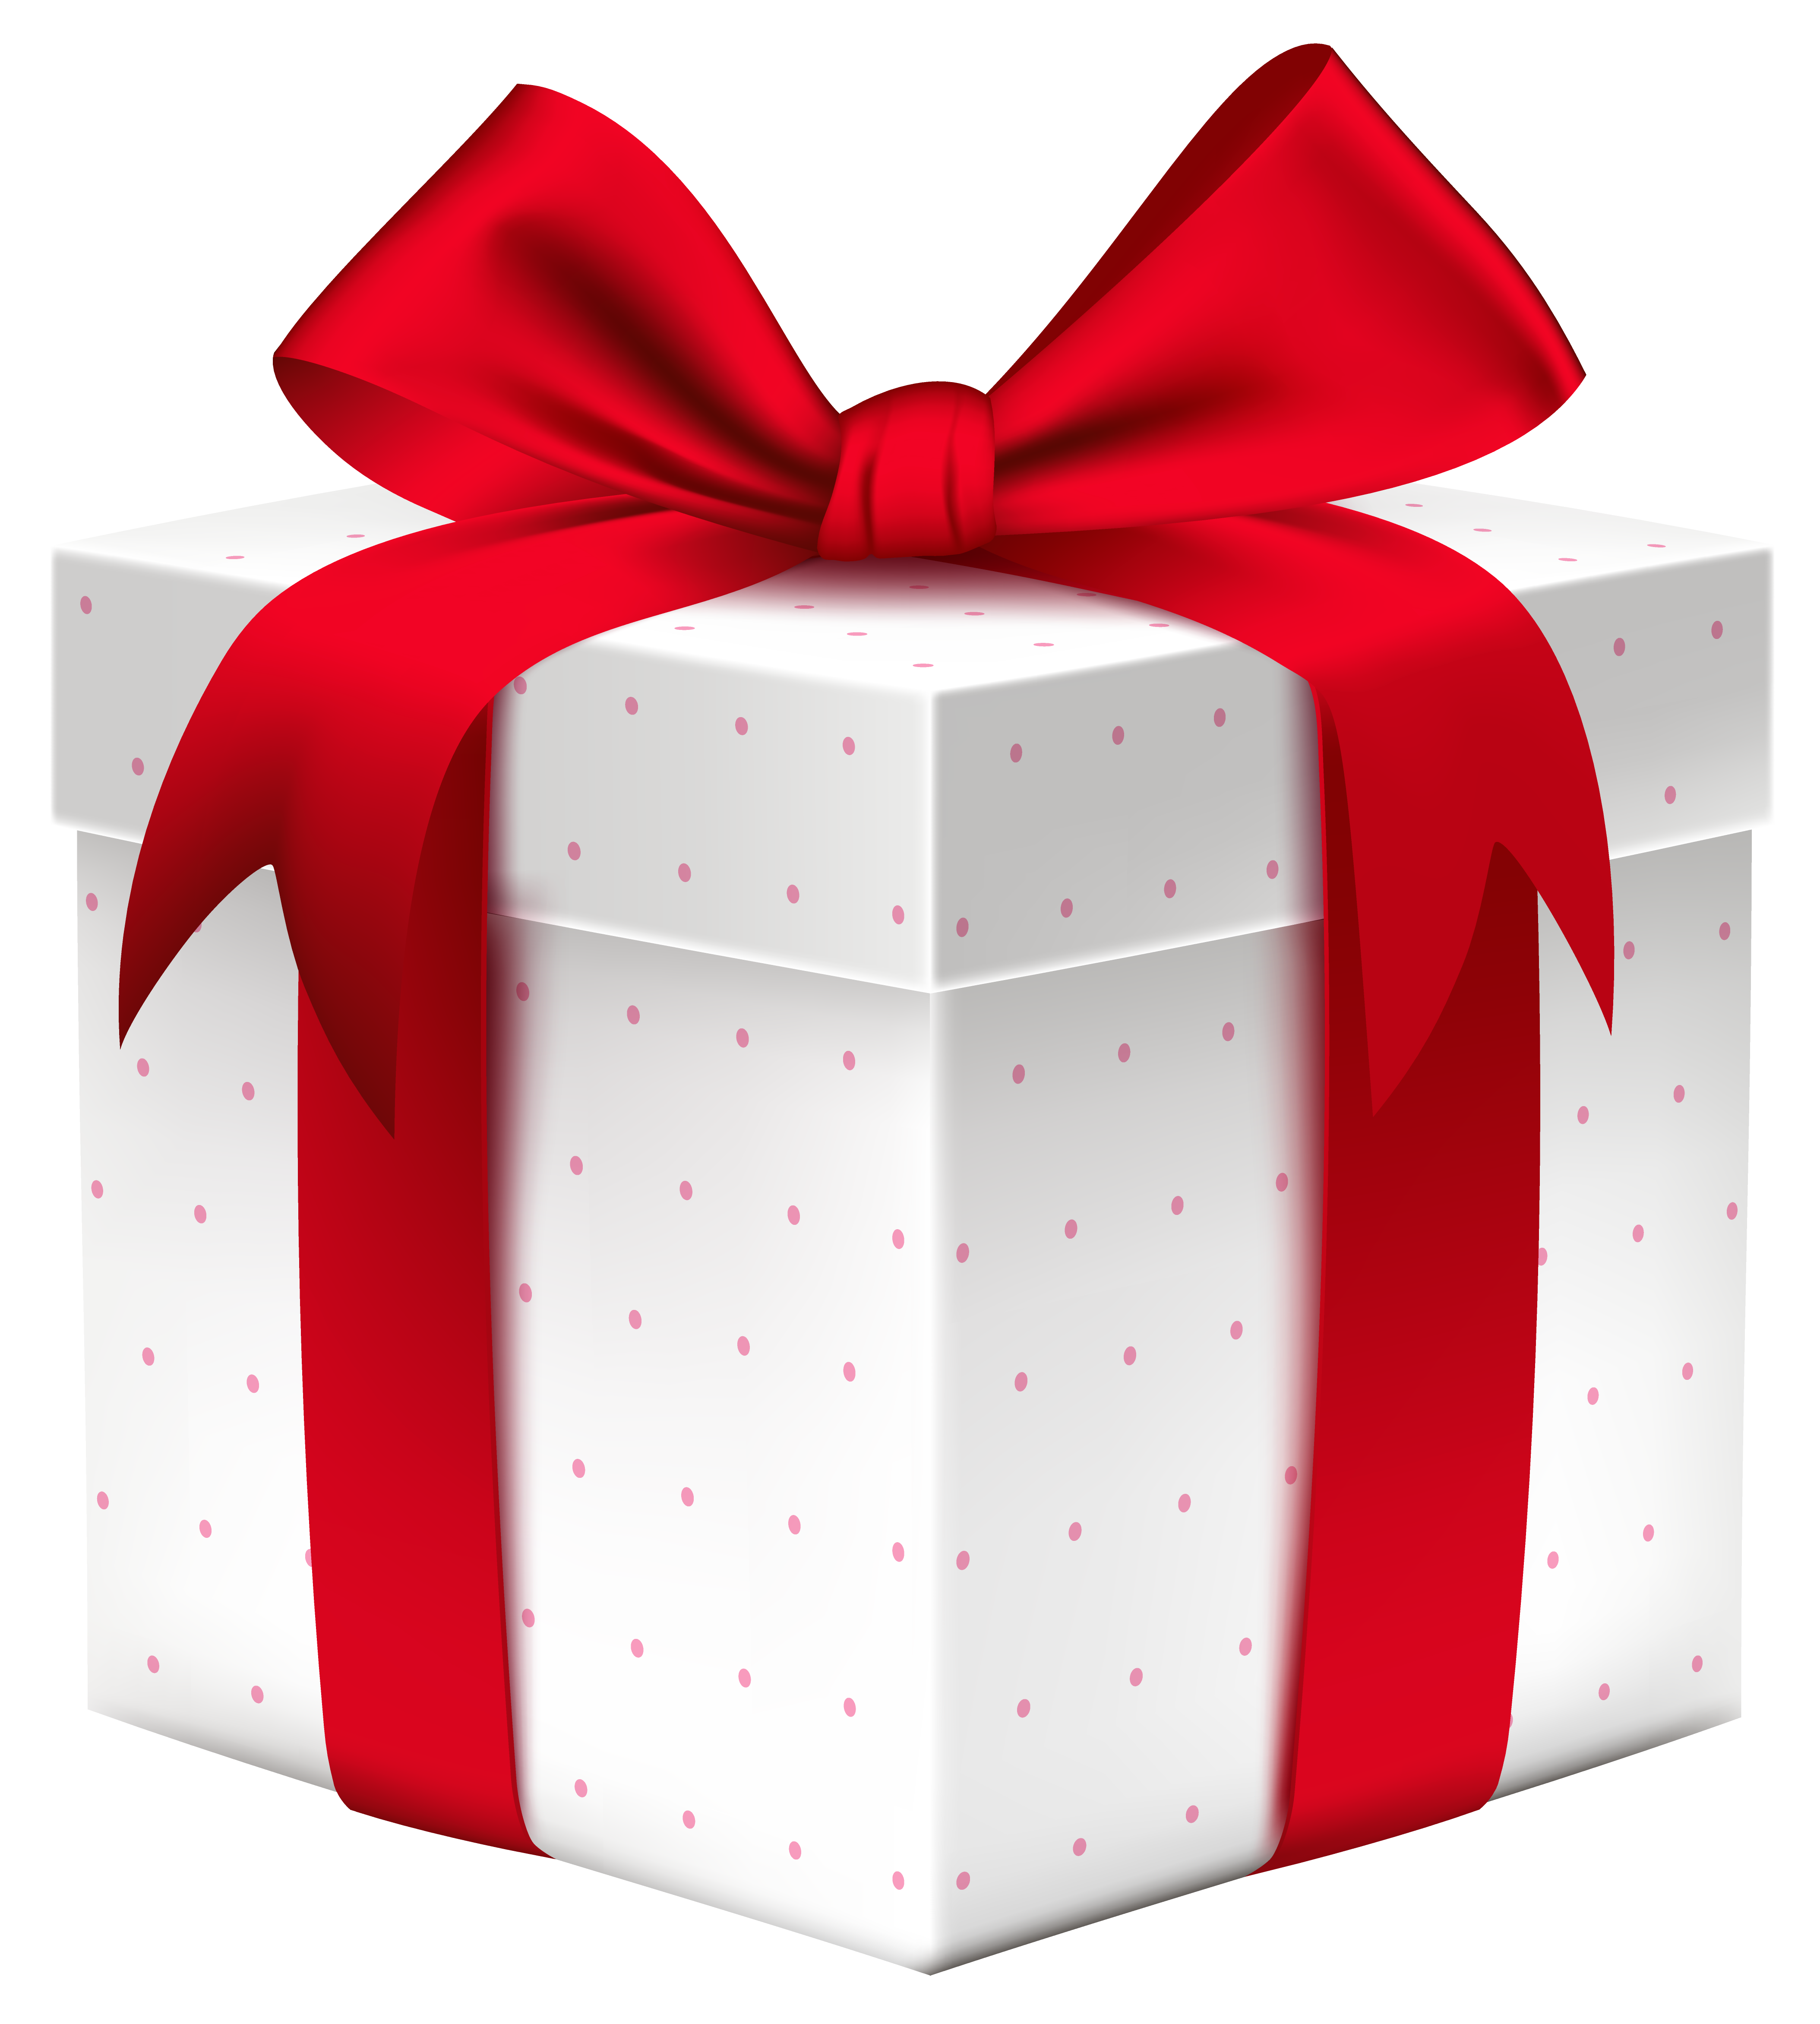 Gifts clipart small gift. White box with red